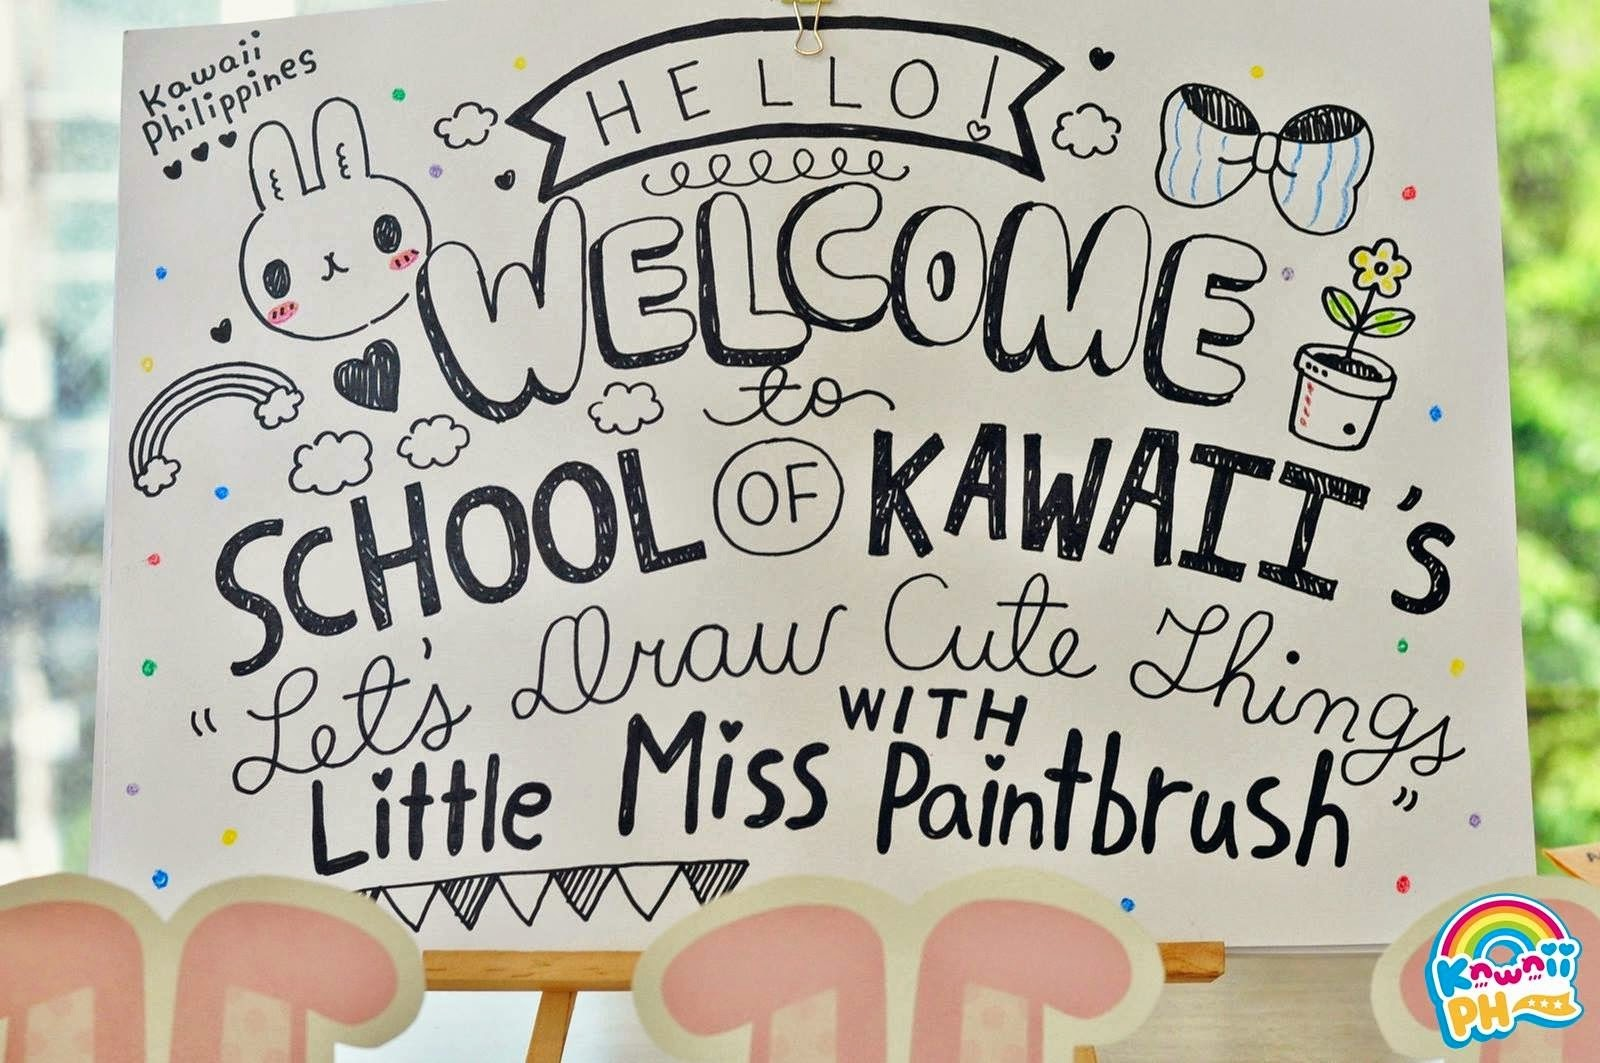 Image of: Draw So Today Finally Will Be Blogging About Kawaii Philippines First Session For The School Of Kawaii Workshops For The Ongoing Project Kawaii Fund To Bokamosoafricaorg School Of Kawaii Lesson 1 Lets Draw Cute Things Moon Peach